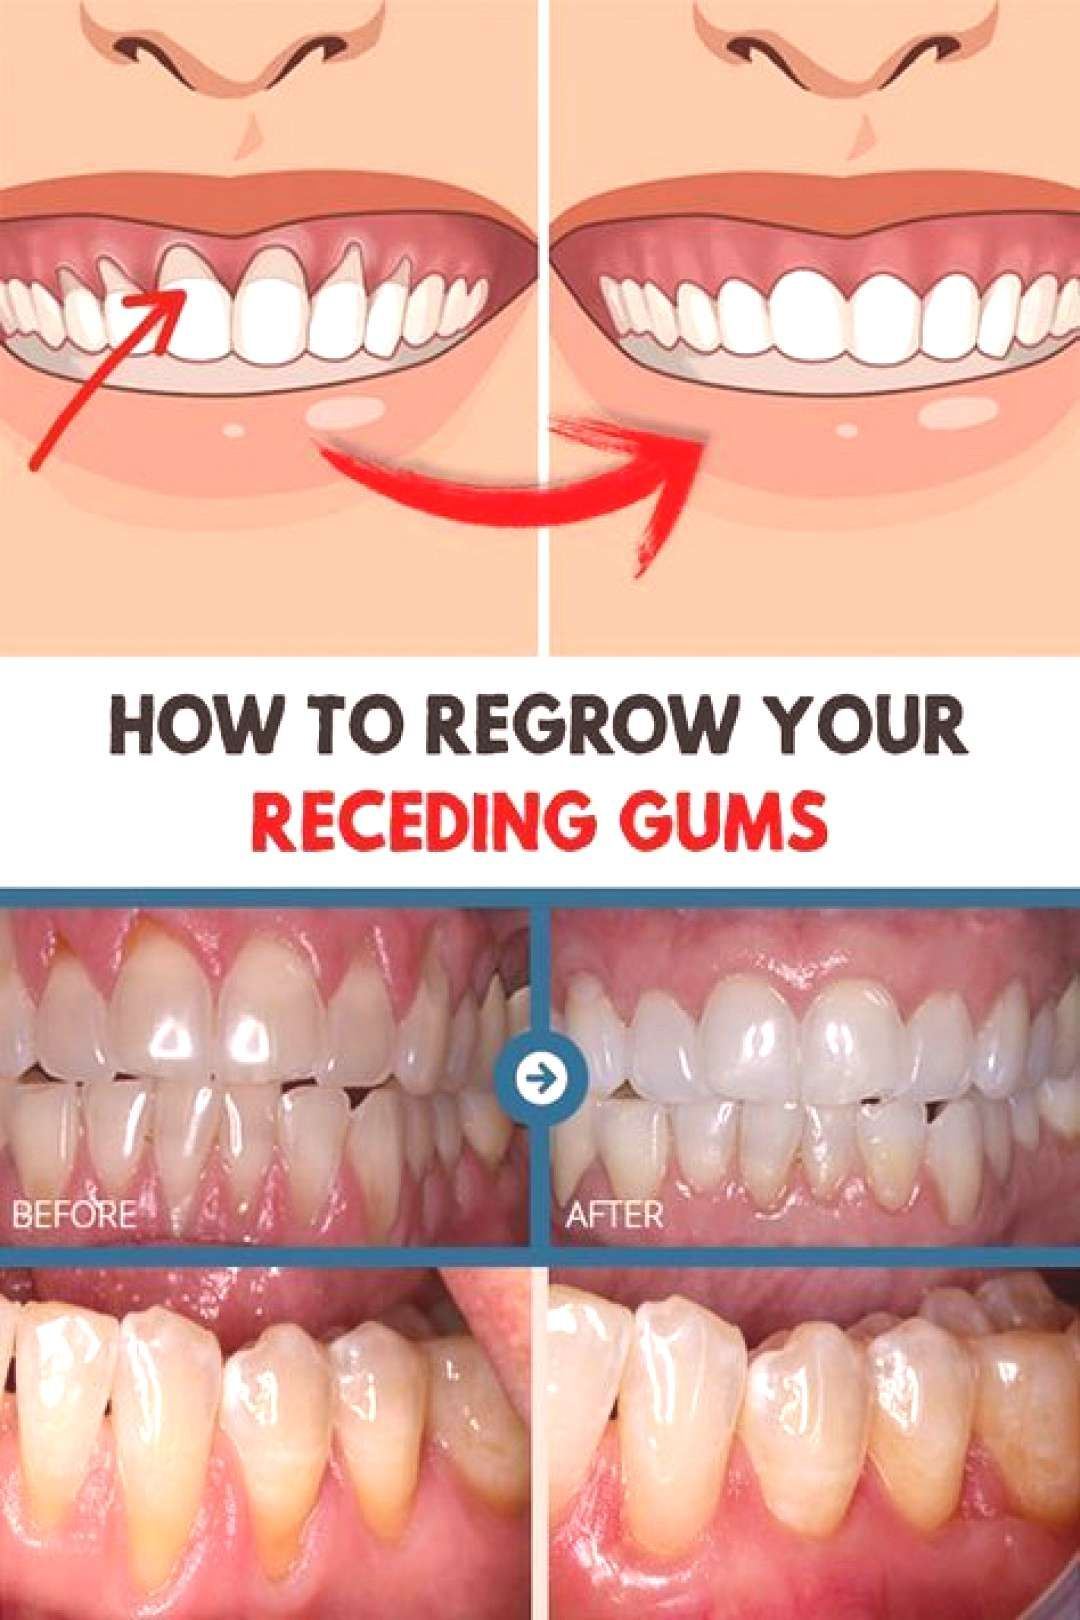 How To Prevent Receding Gums From Getting Worse - Arxiusarquitectura